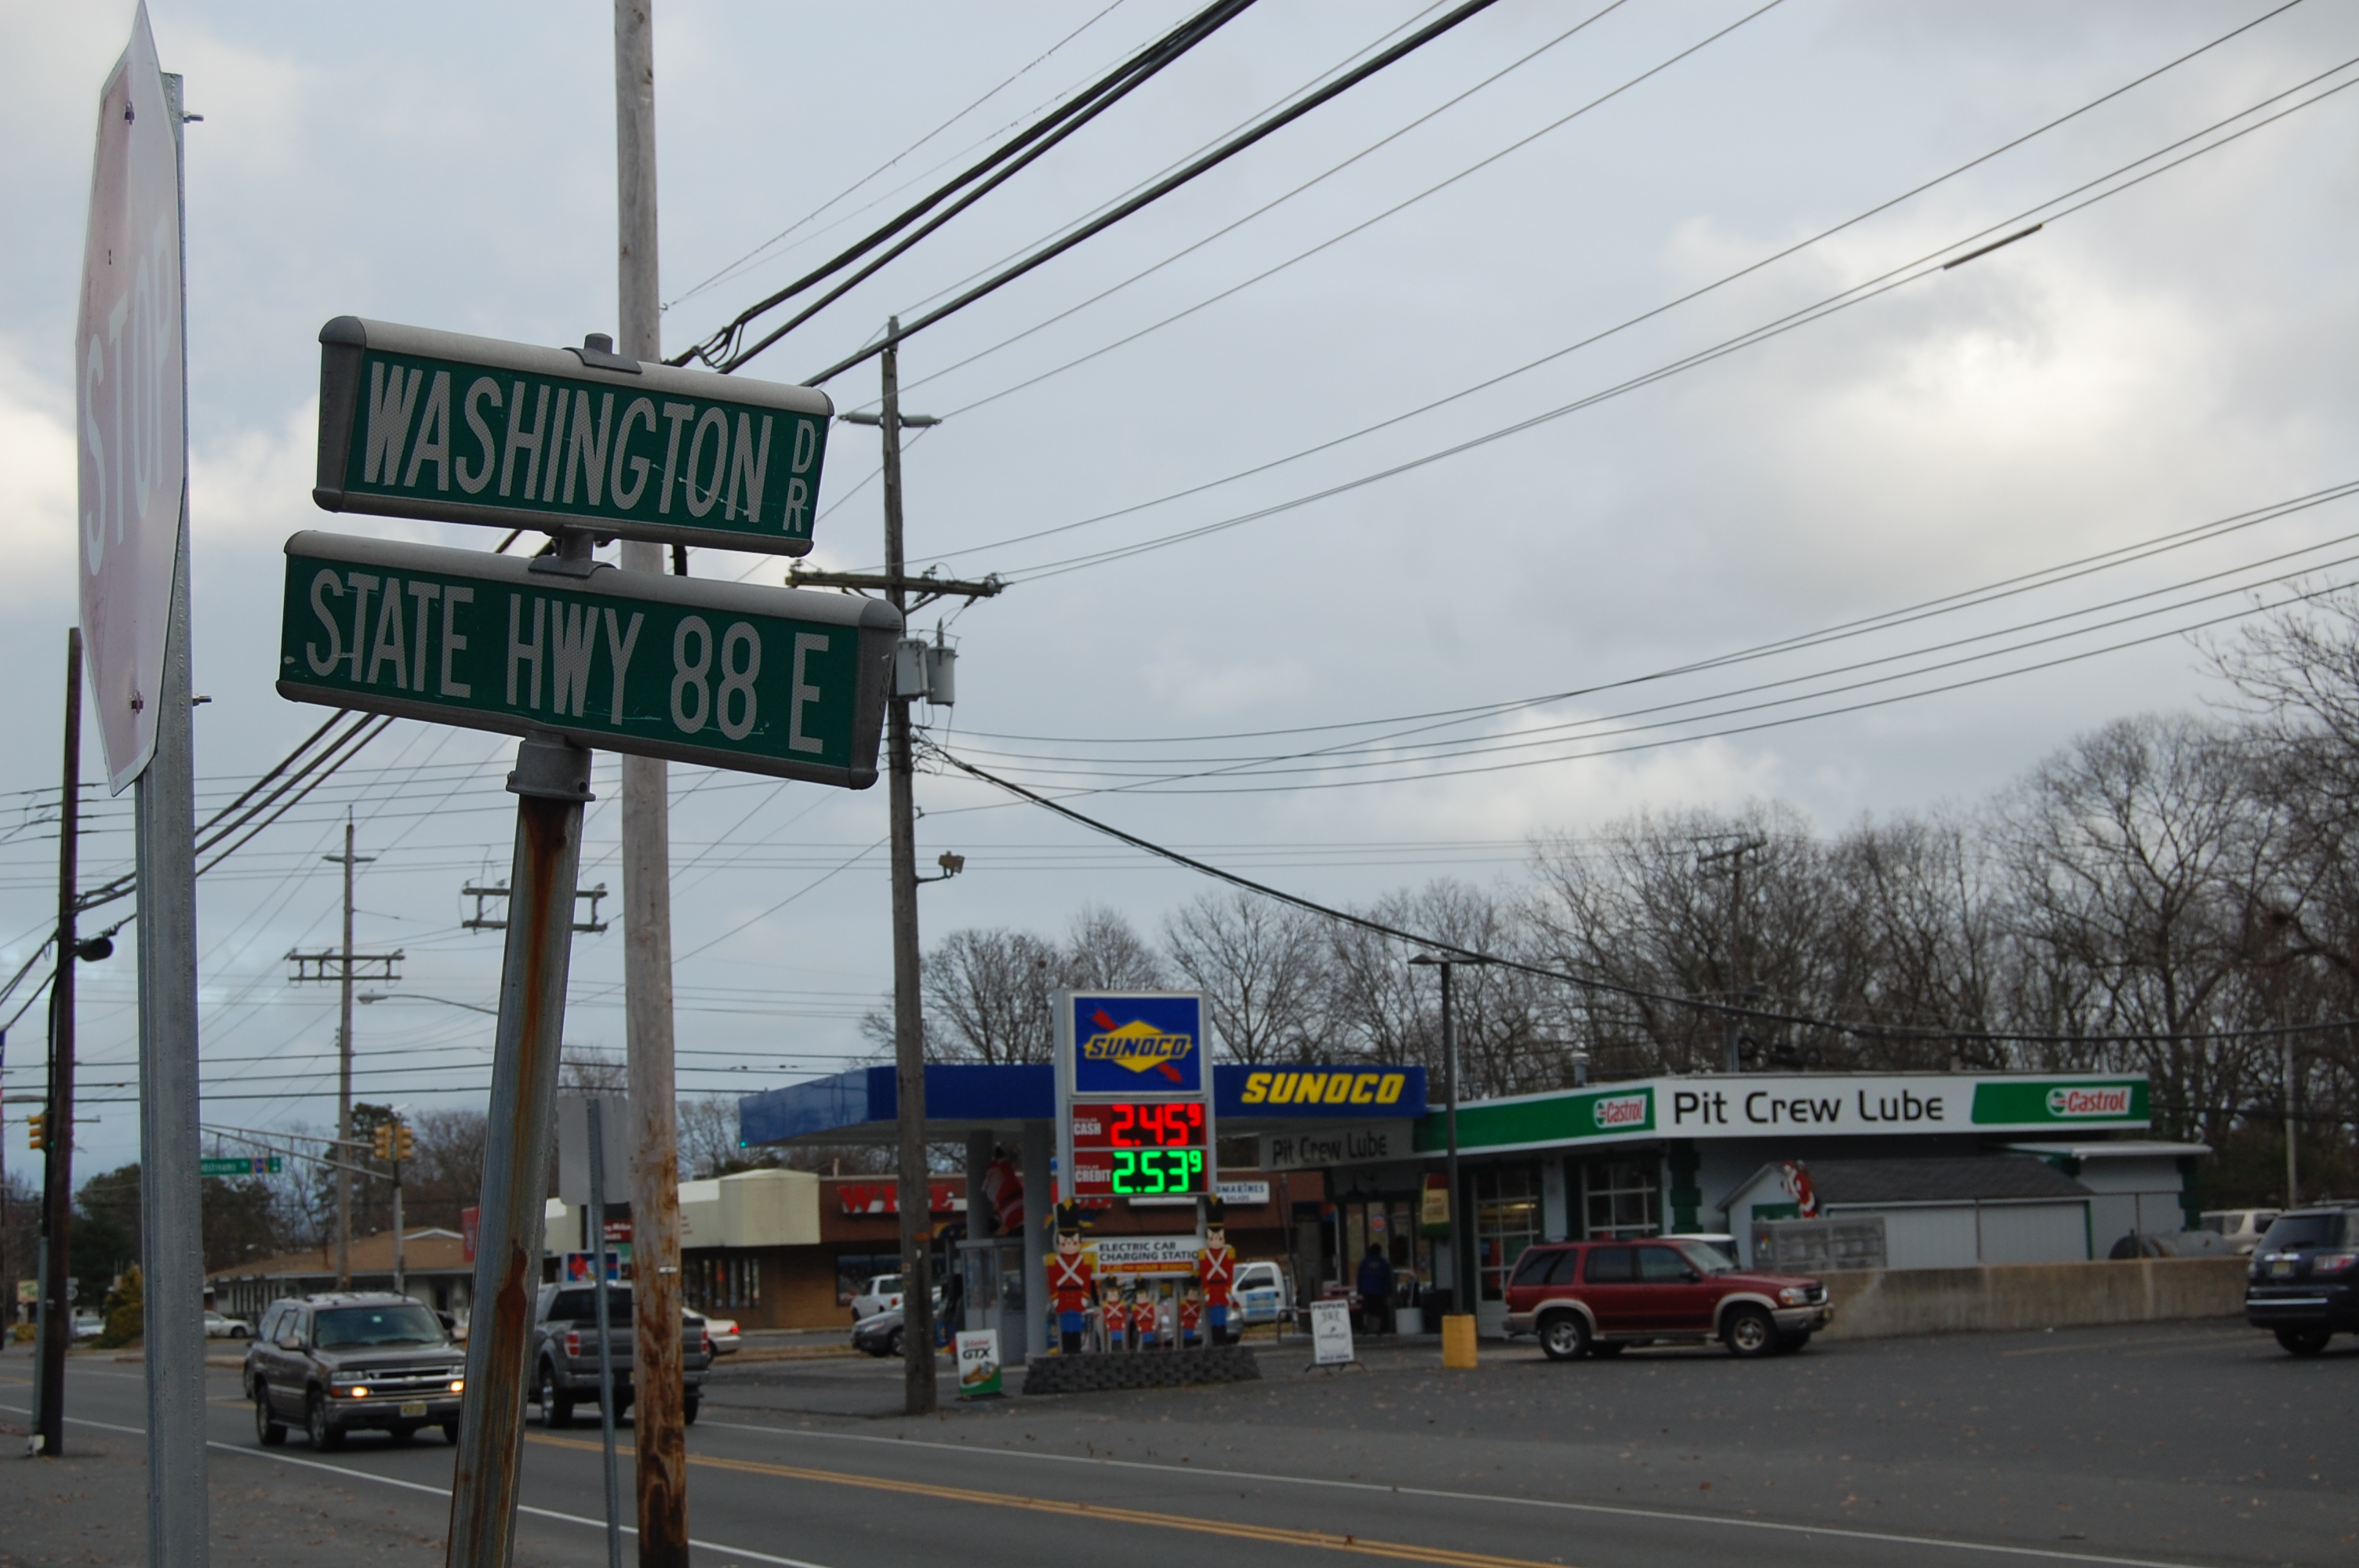 No left turns onto Route 88 will be permitted from two streets in town under a new ordinance. (Photo: Daniel Nee)